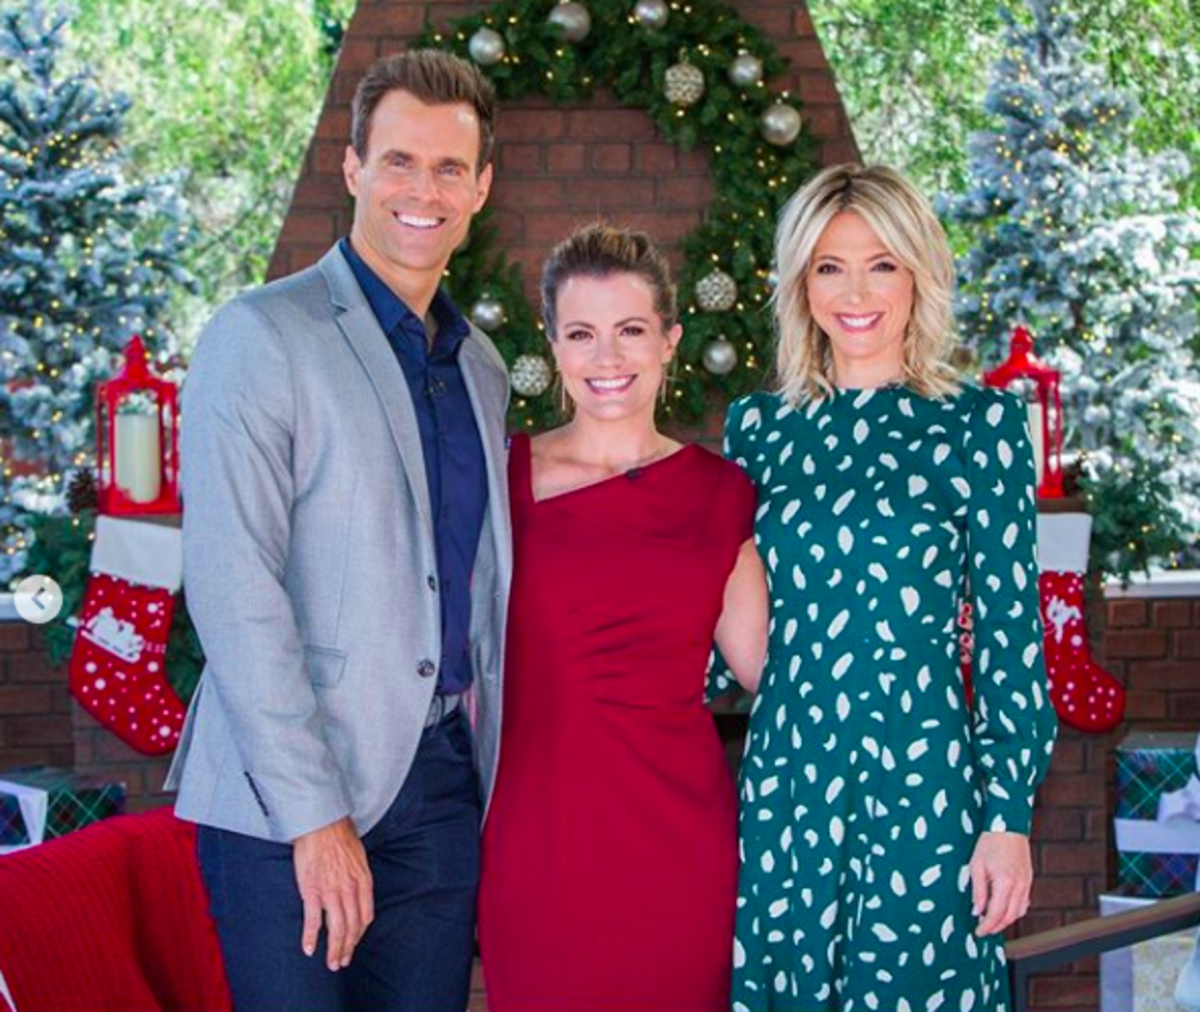 Photo Credit: Home and Family Instagram